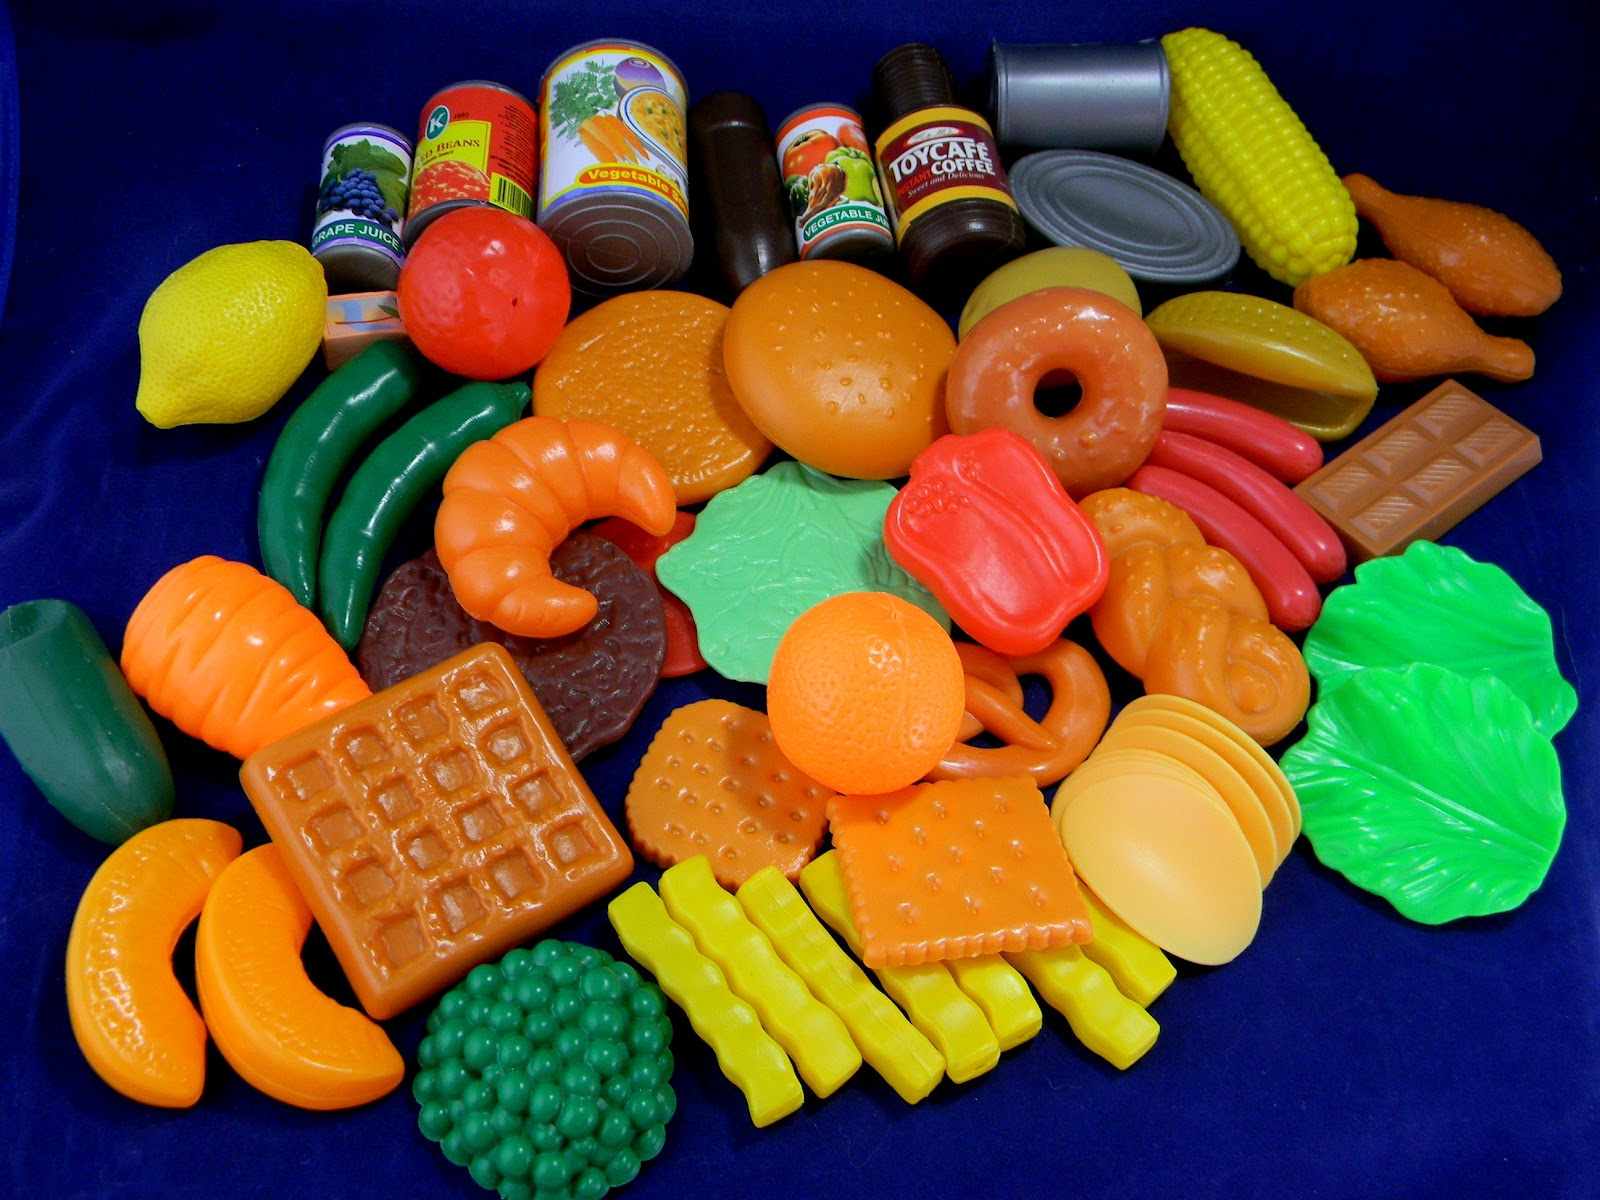 Play Cooking Toys : Blissfully imperfect thrift share monday bright cheerful